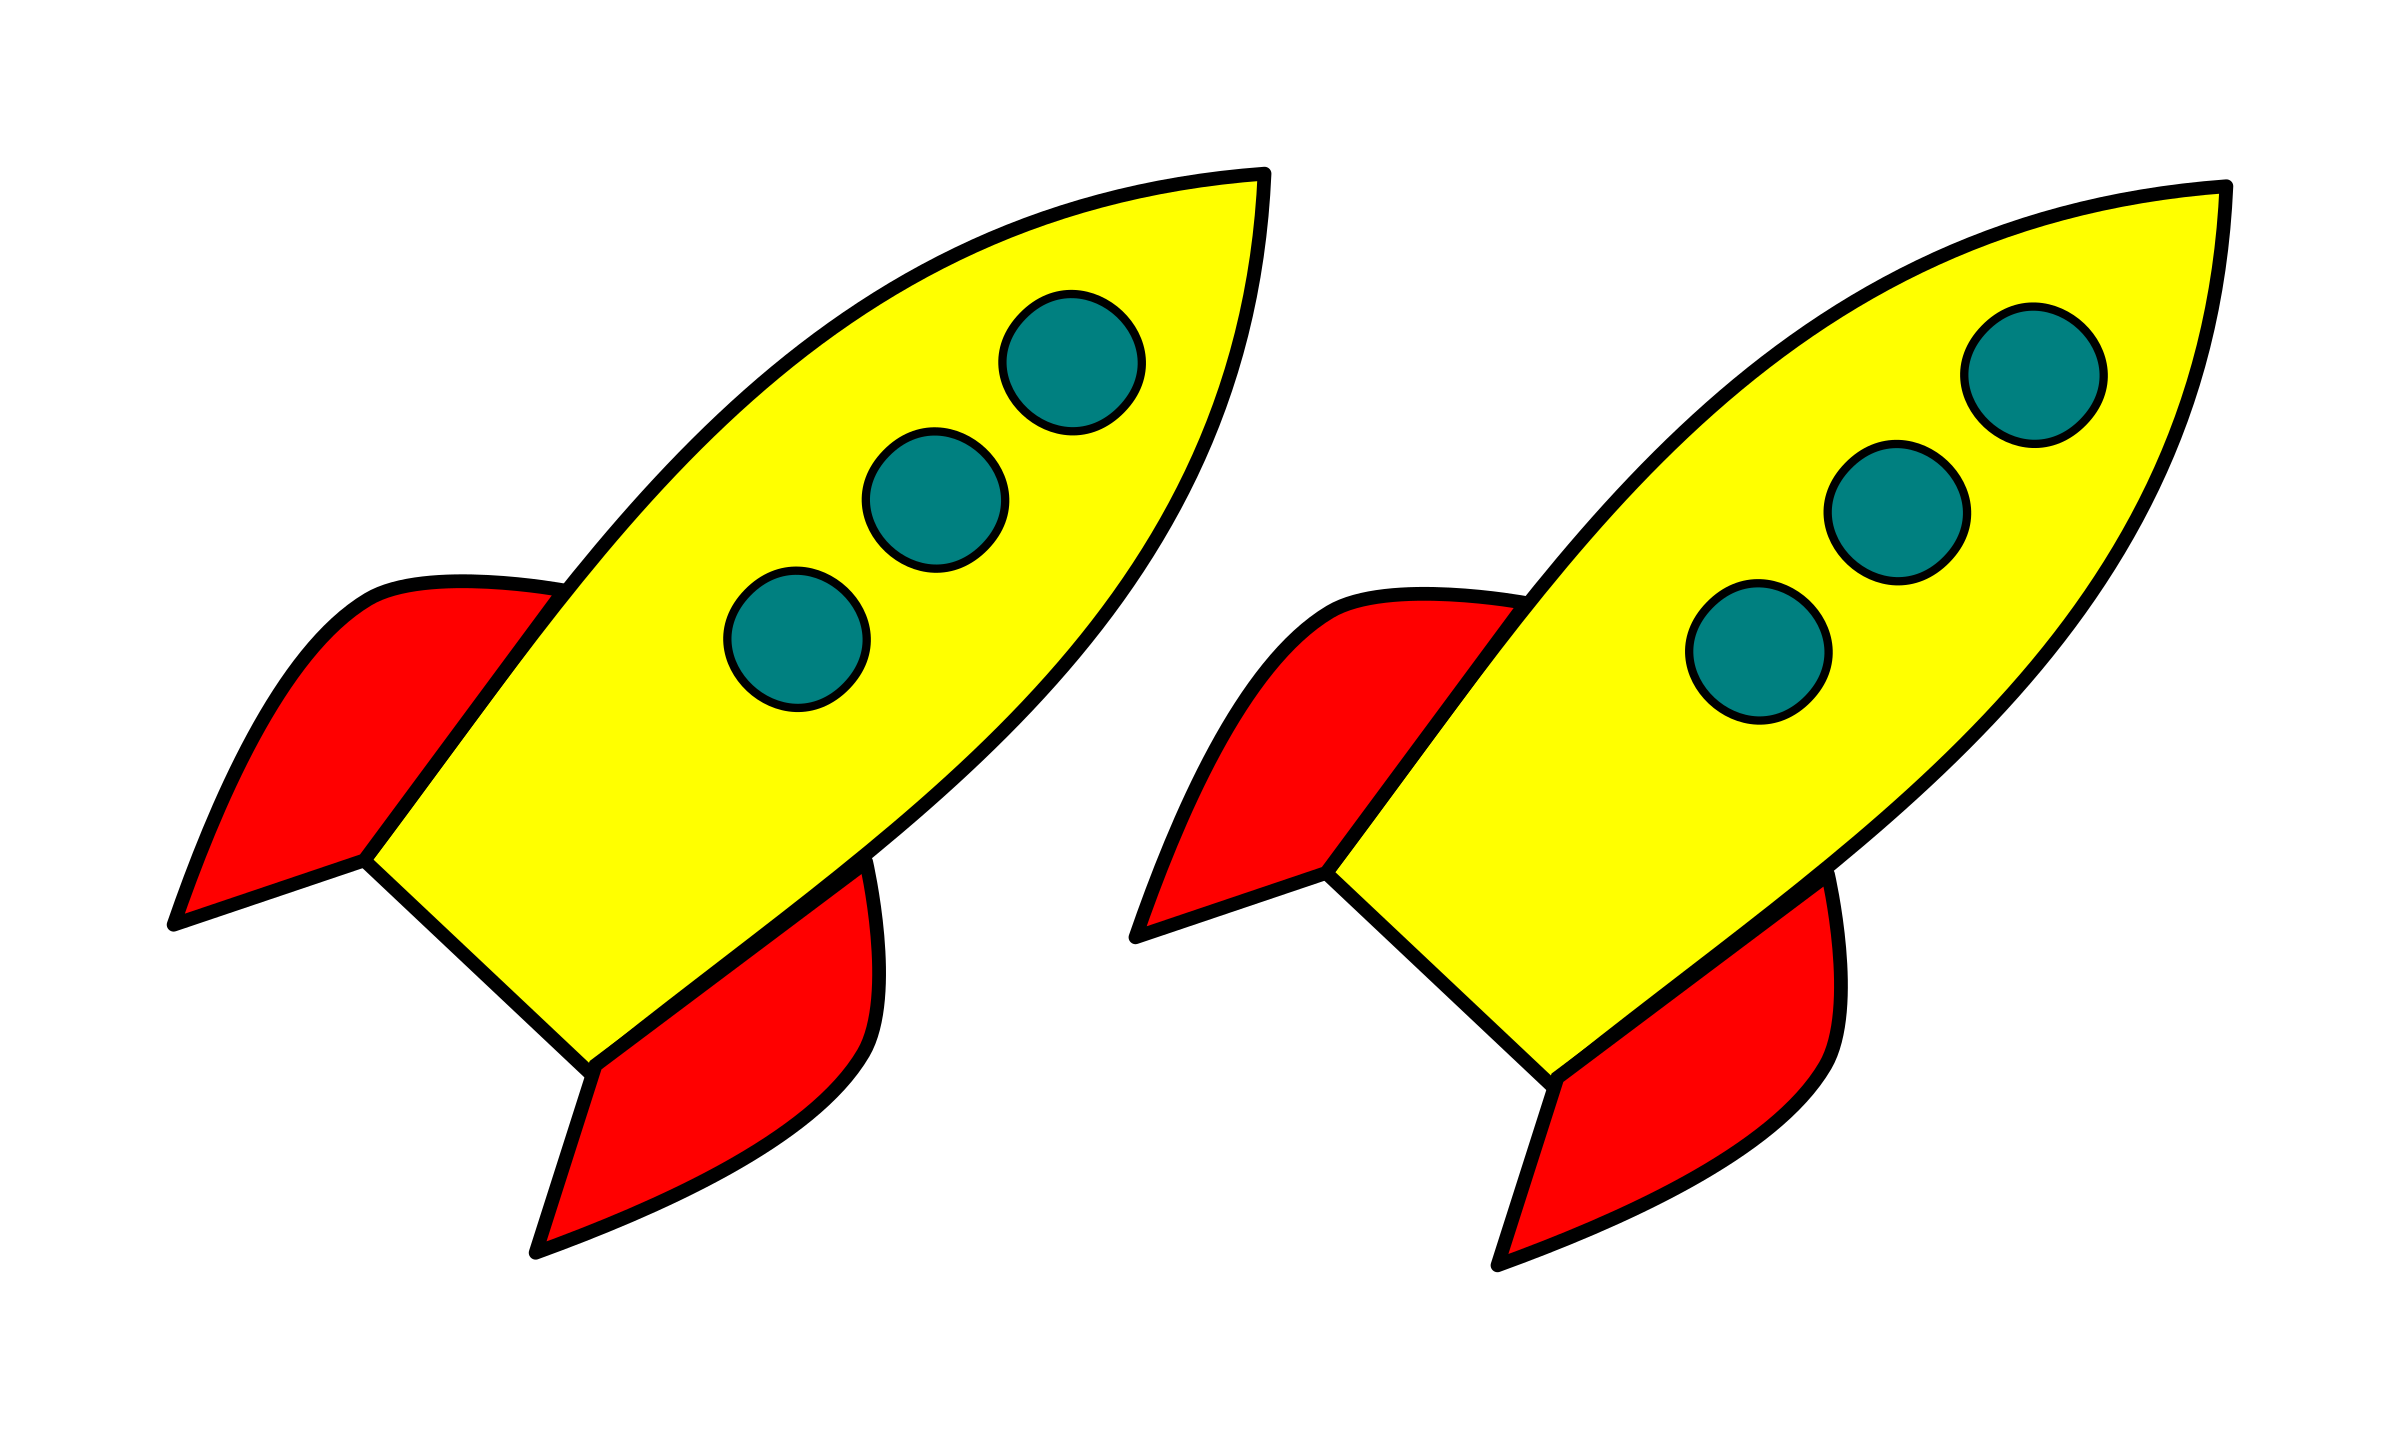 Rockets for Fluency by rygle